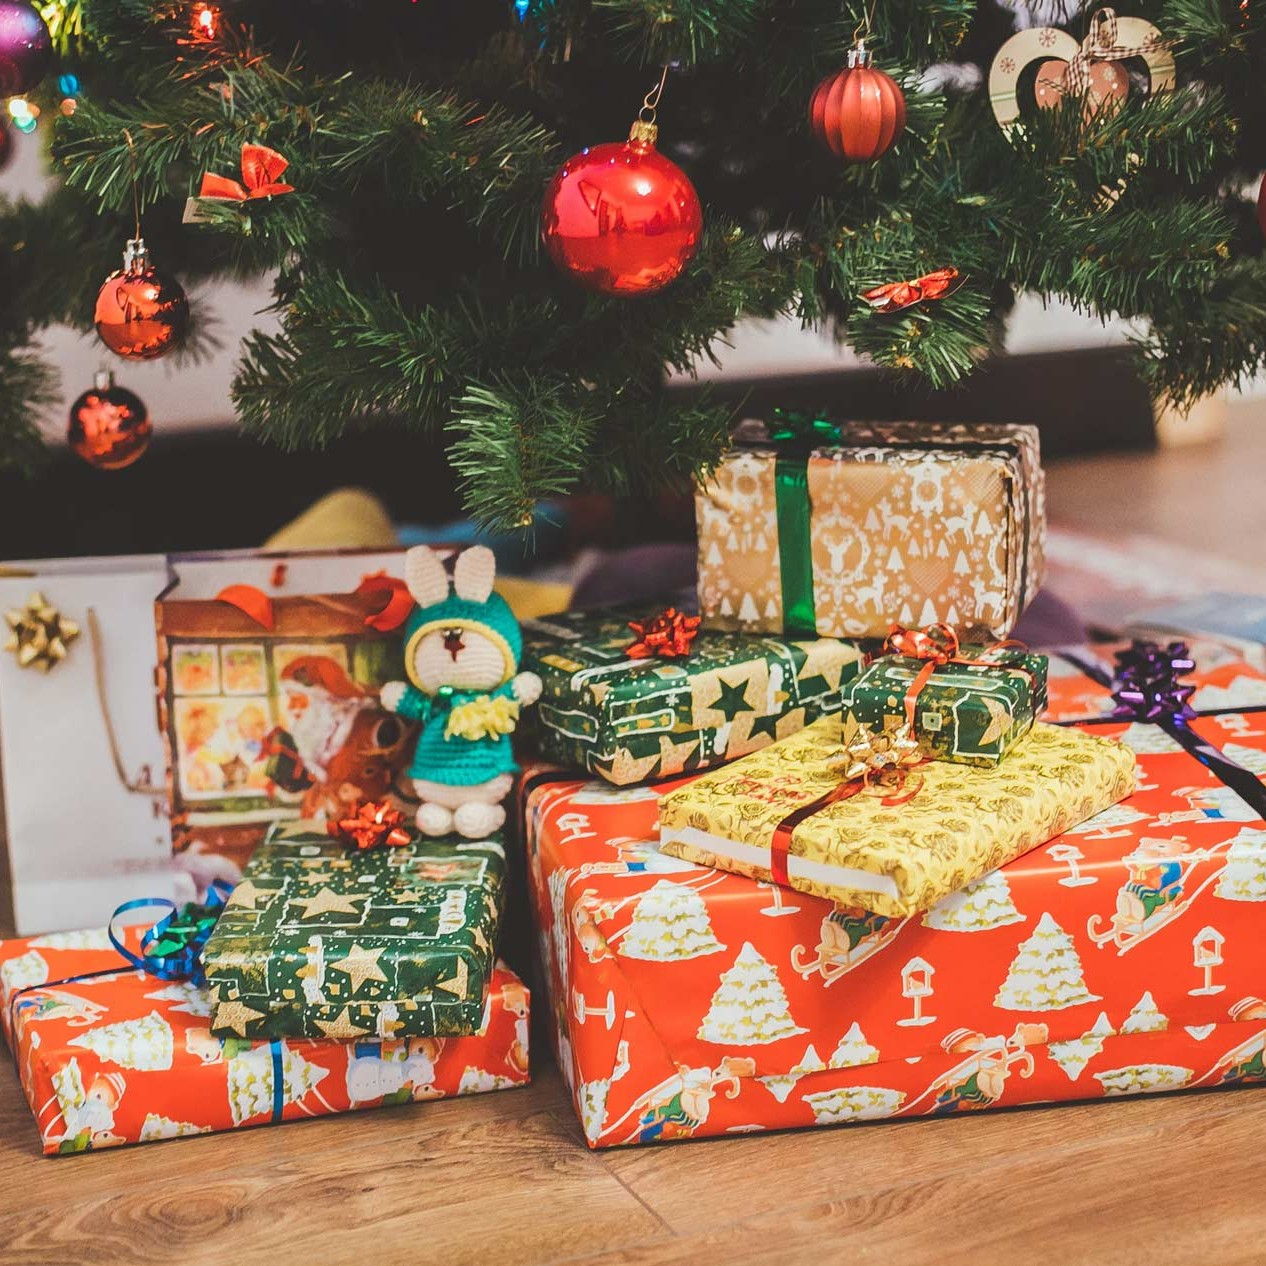 Happy Holidays! Is it all about the Presents?